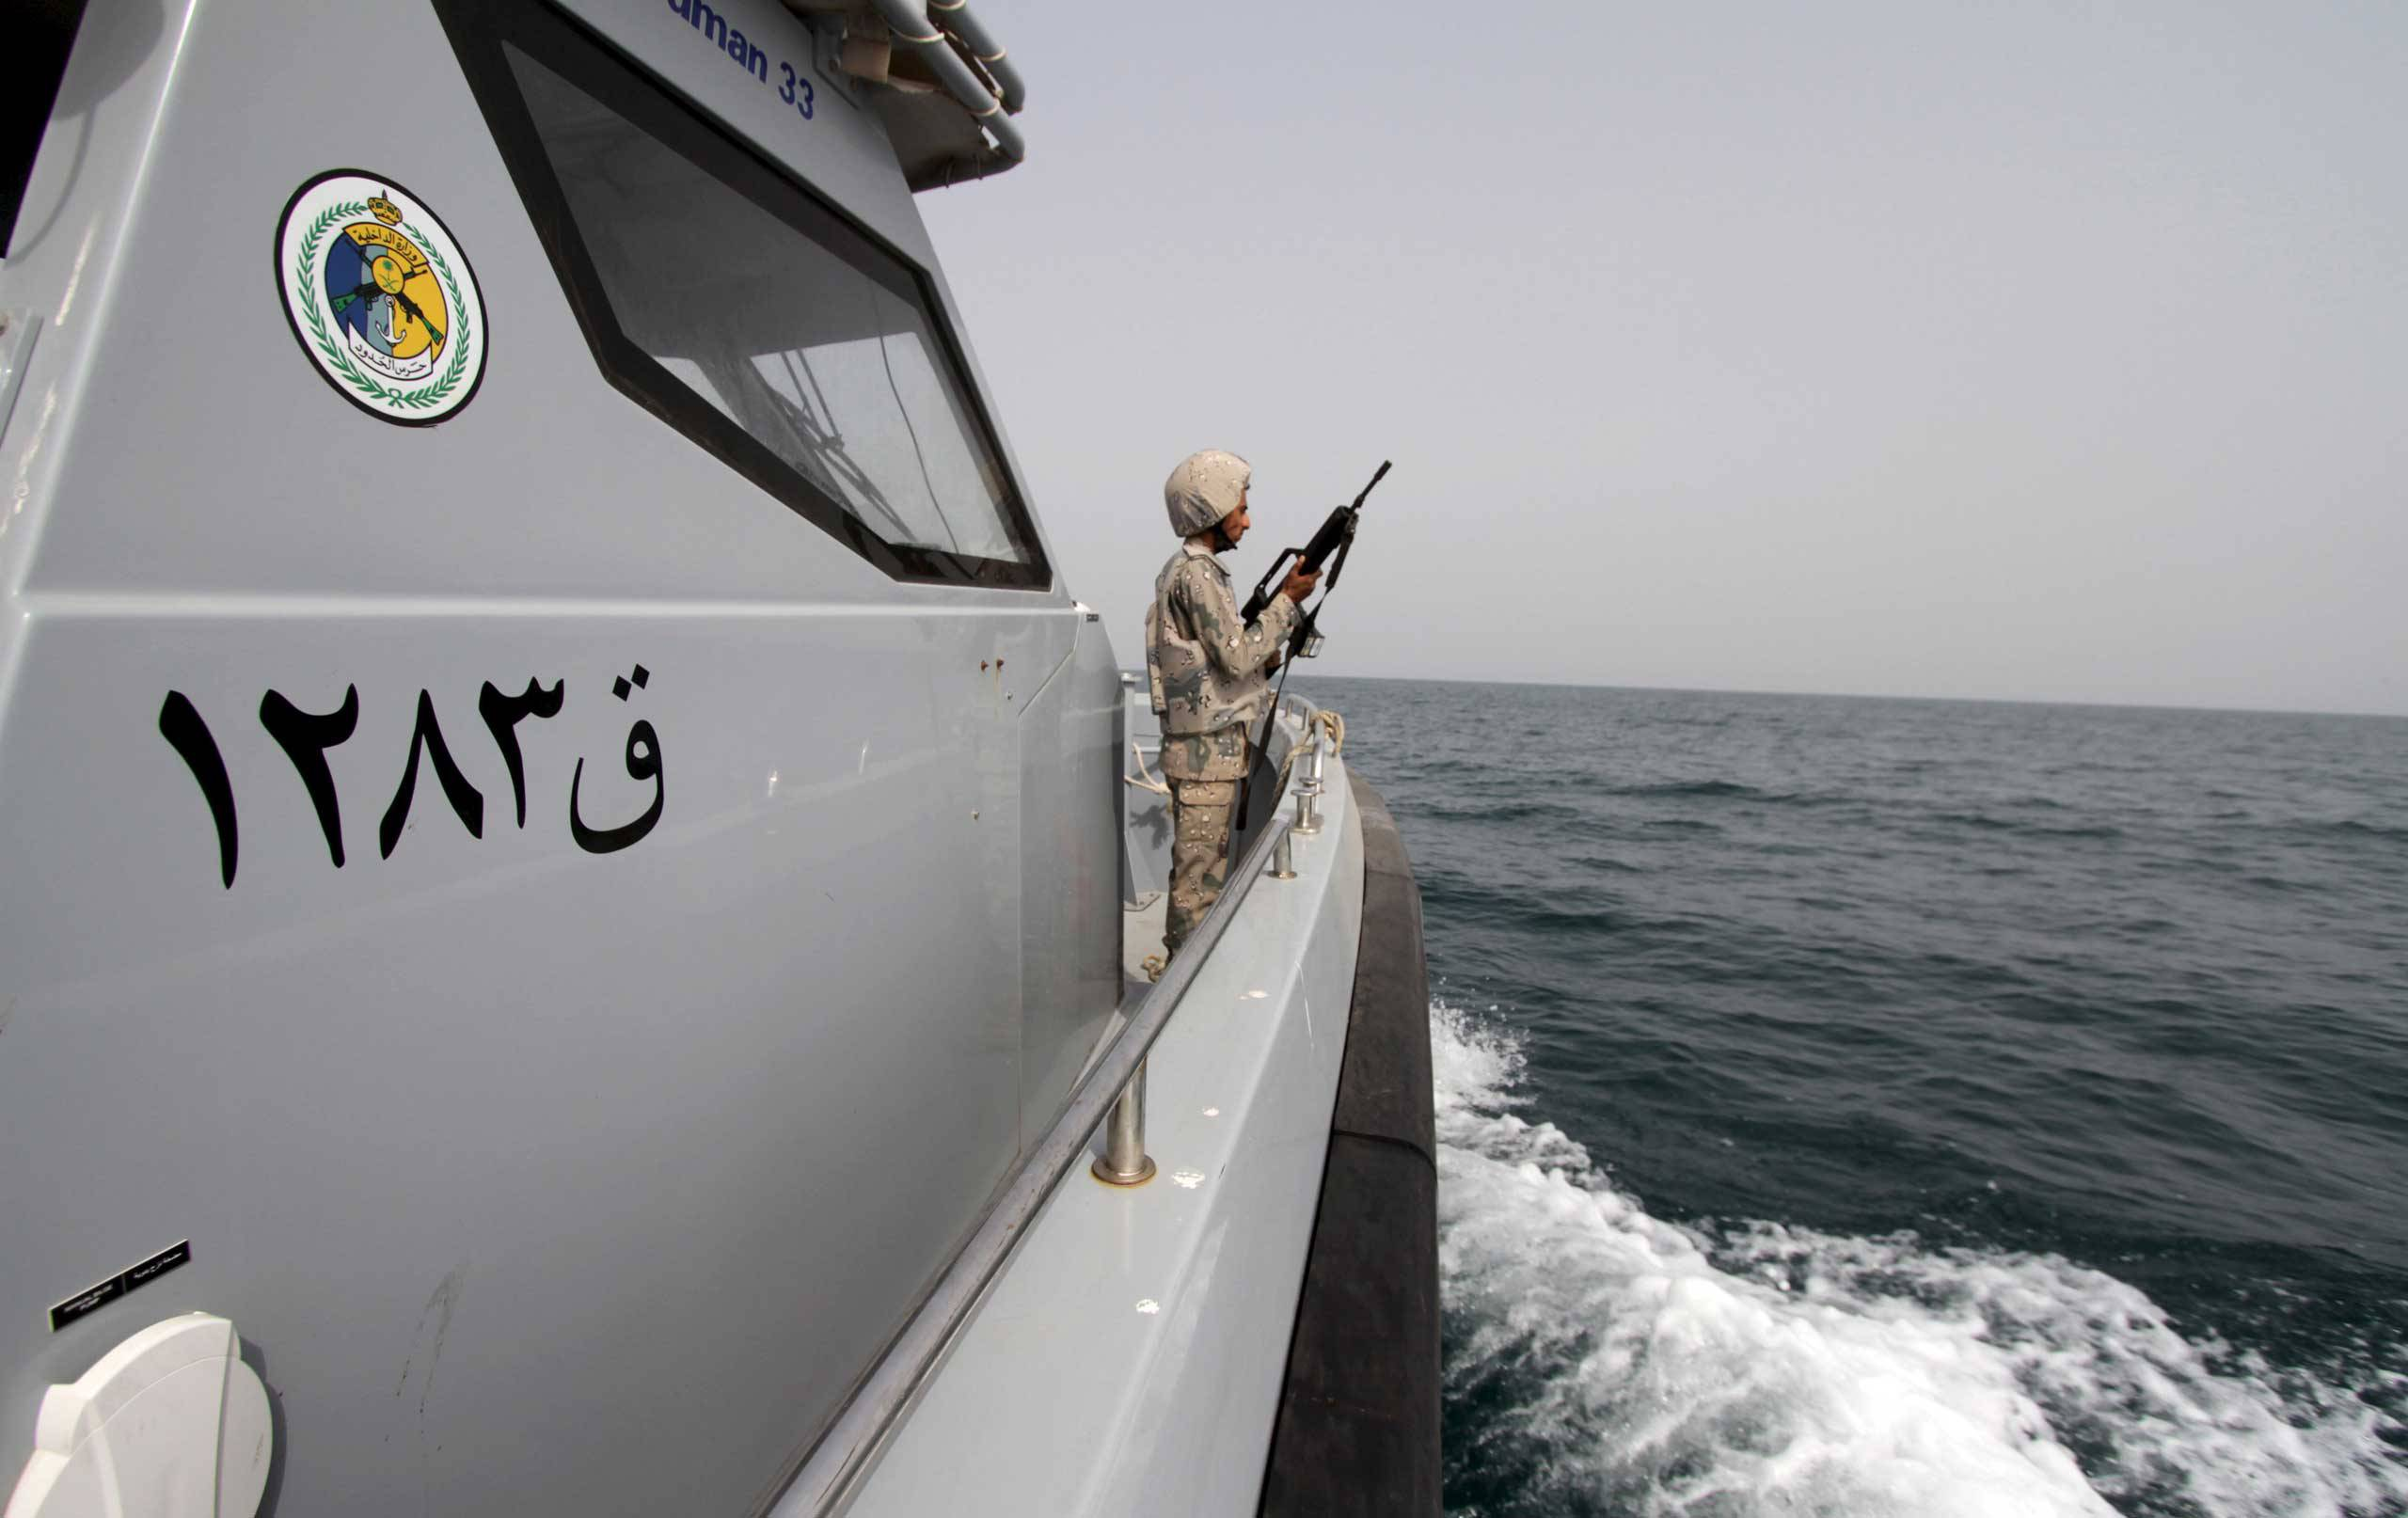 A Saudi border guard watches as he stands in a boat off the coast of the Red Sea on Saudi Arabia's maritime border with Yemen, near Jizan April 8, 2015. Iran sent two warships to the Gulf of Aden on Wednesday, state media reported, establishing a military presence off the coast of Yemen where Saudi Arabia is leading a bombing campaign to oust the Iran-allied Houthi movement. REUTERS/Faisal Al Nasser - RTR4WIGC